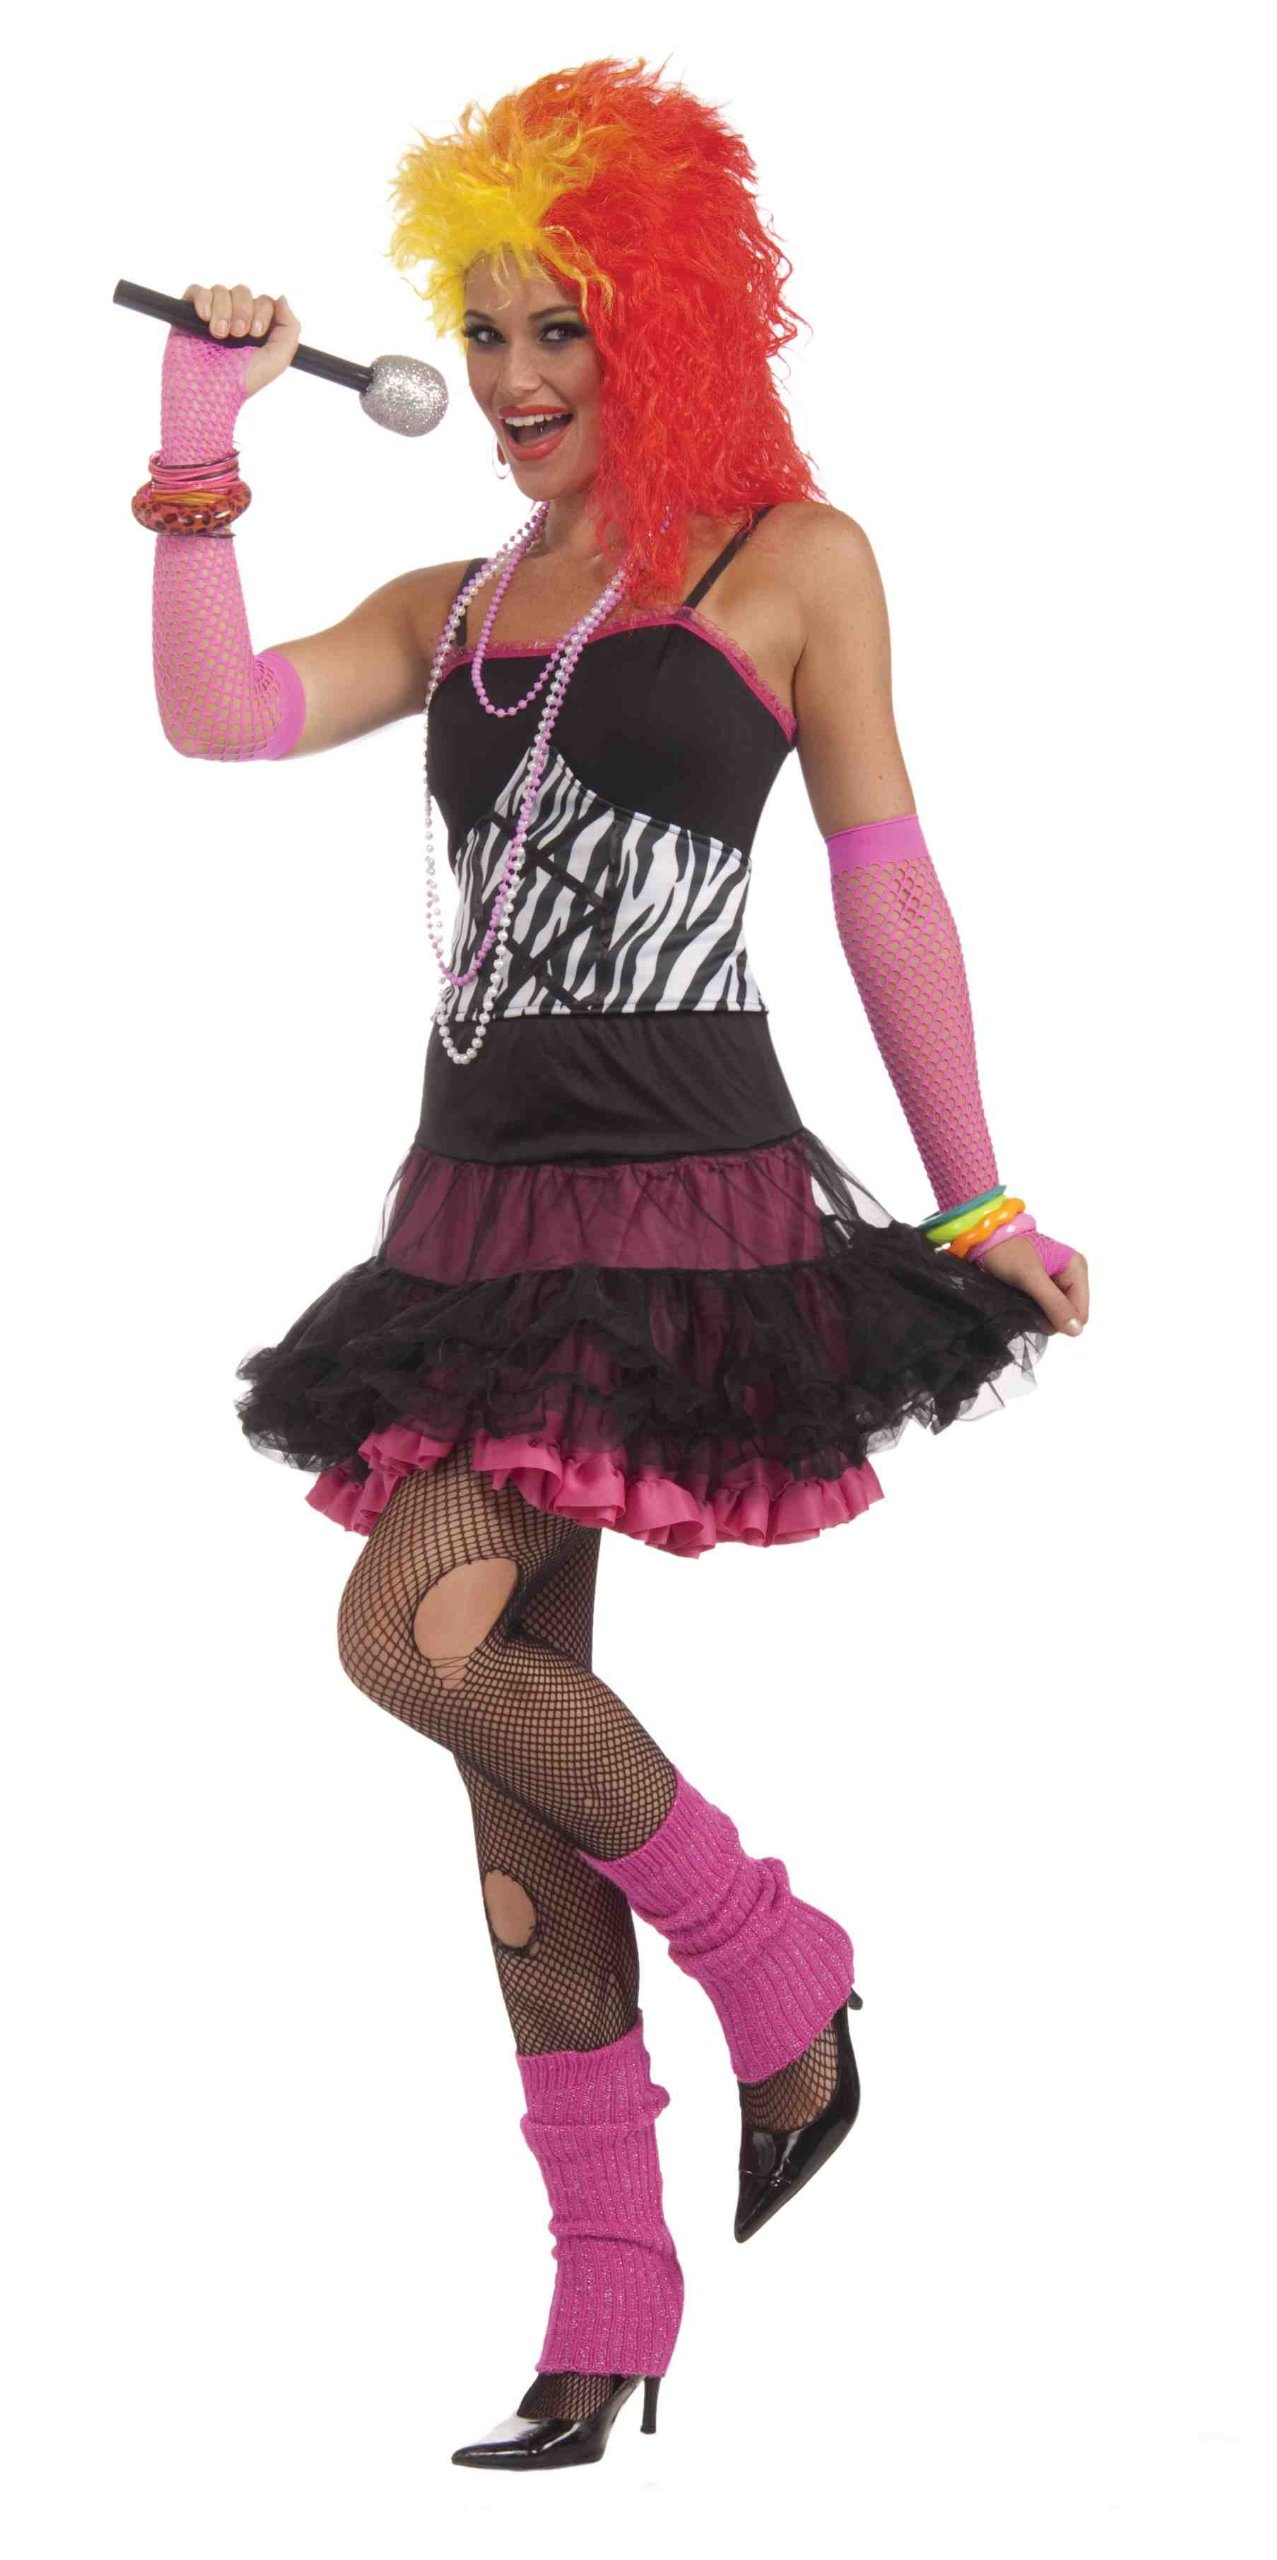 Forum To The Maxx Collection Dance Party Princess Costume, Pink/Black, Standard by Forum Novelties